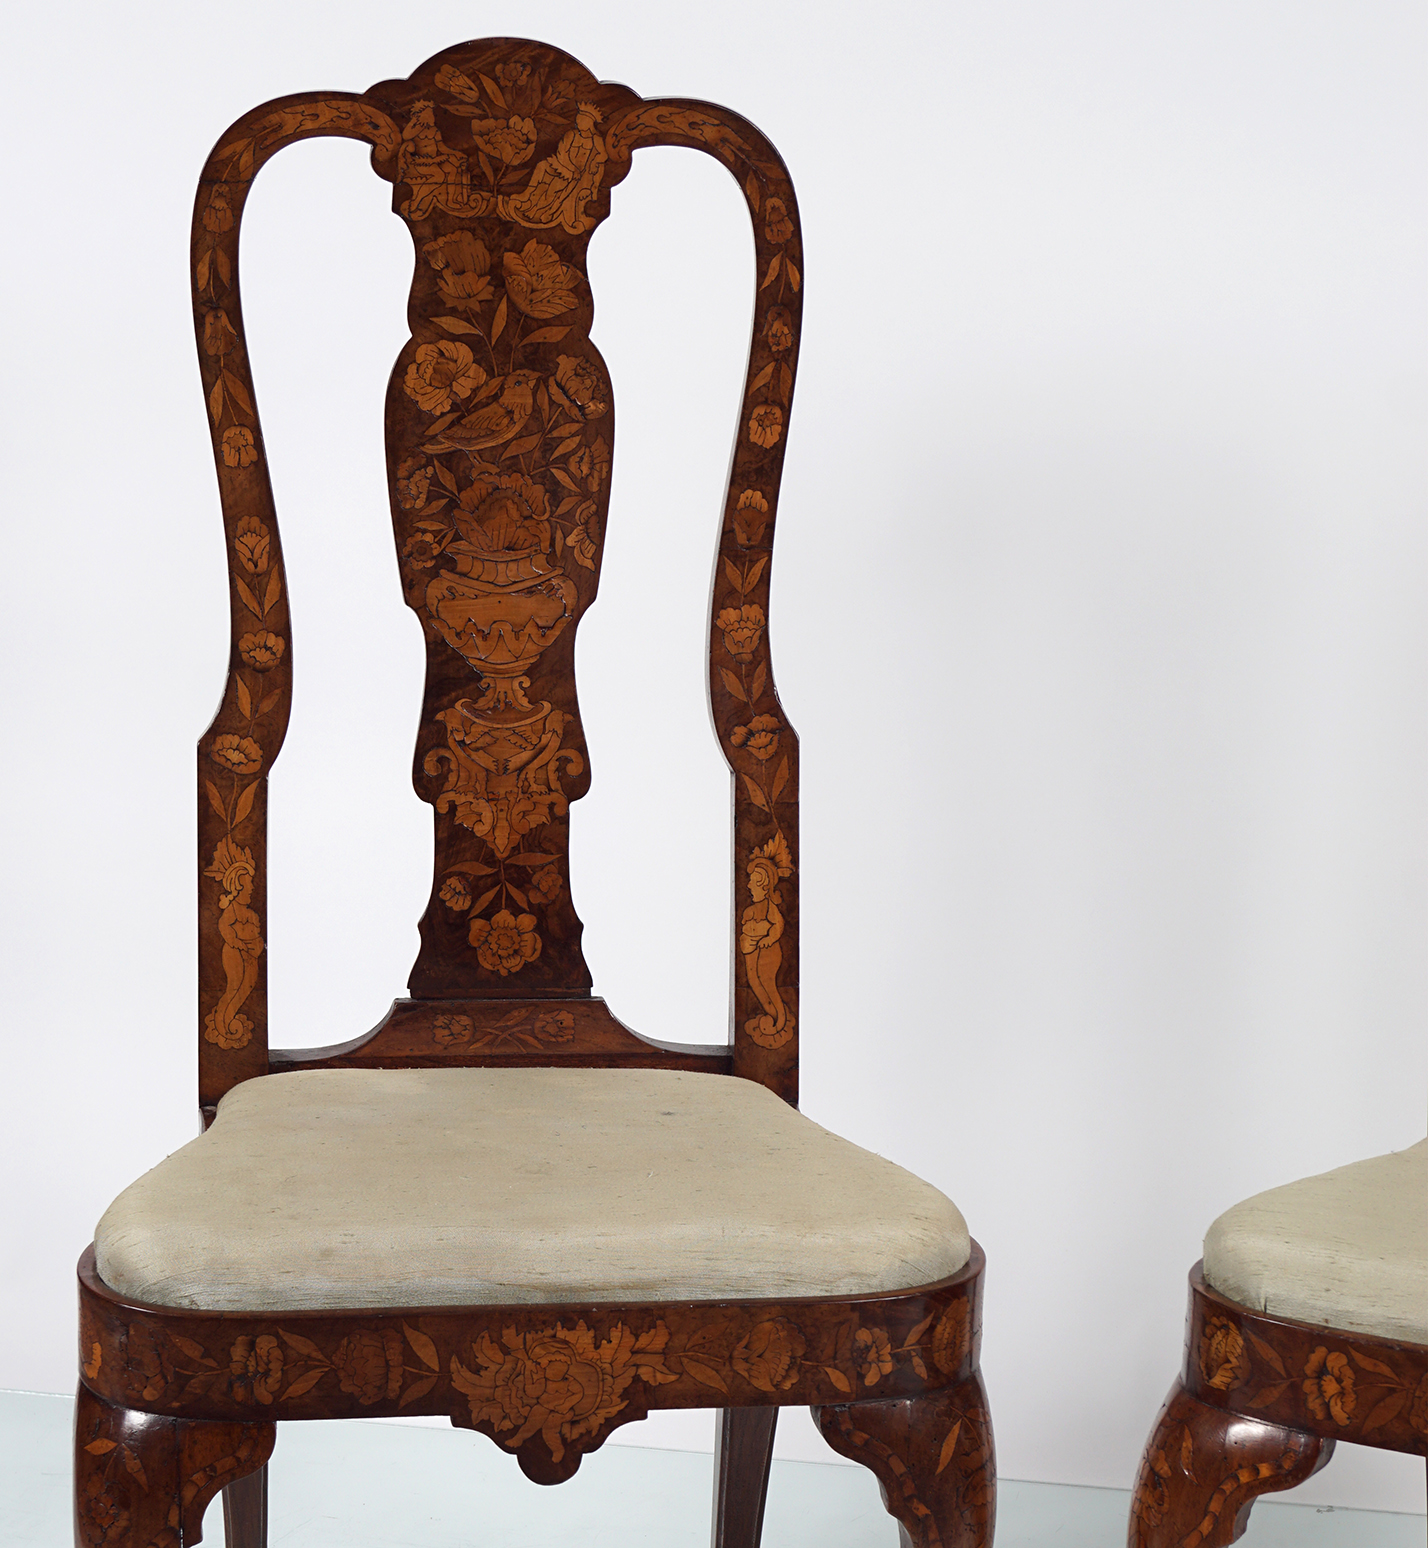 PAIR OF 19TH-CENTURY DUTCH MARQUETRY CHAIRS - Image 2 of 3